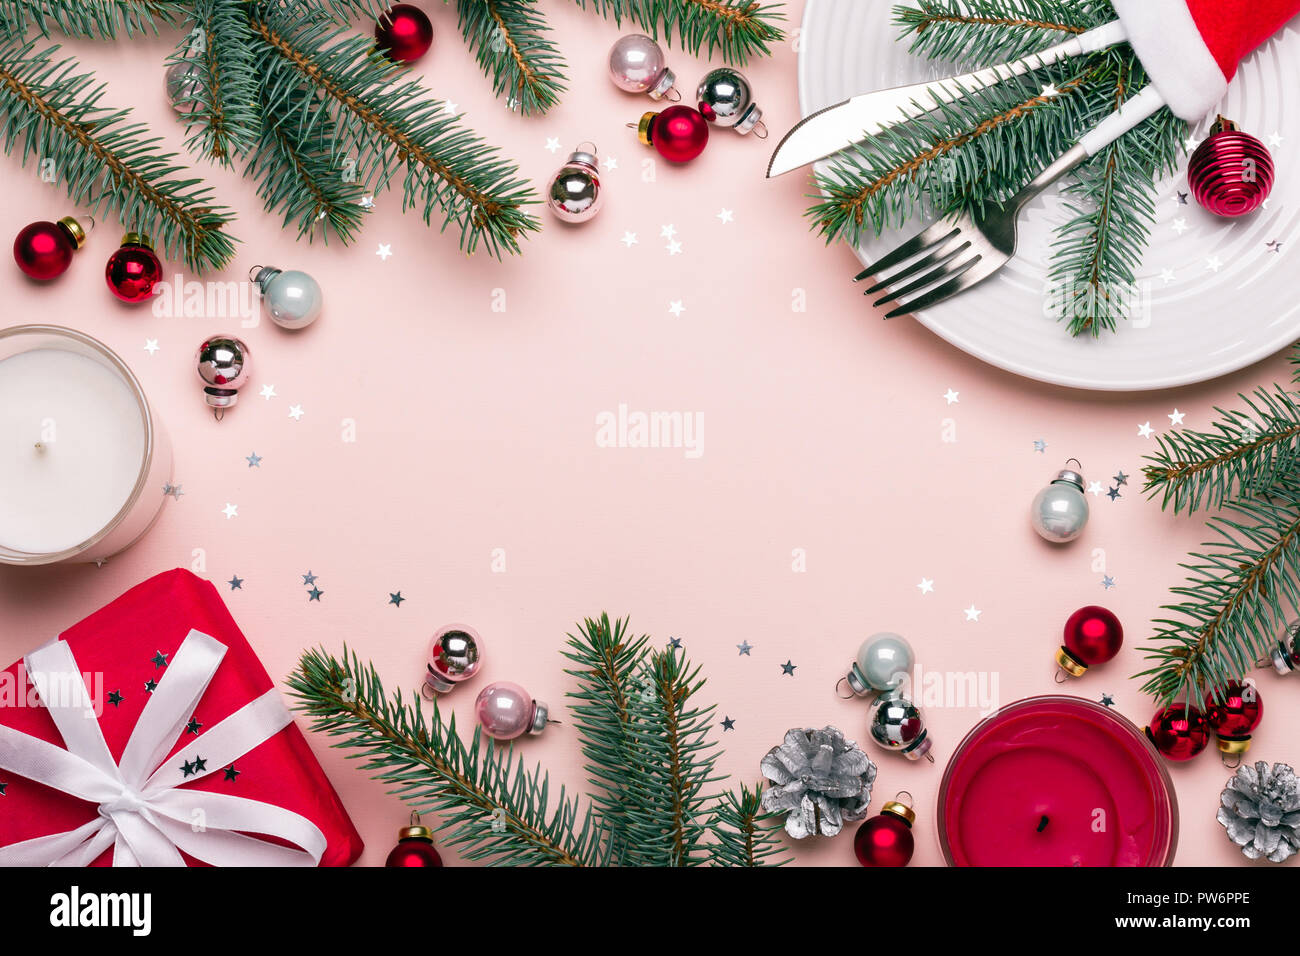 Christmas Festive Frame With Christmas Decorations In Red Pink And Green Colors Celebration Table Setting Stock Photo Alamy